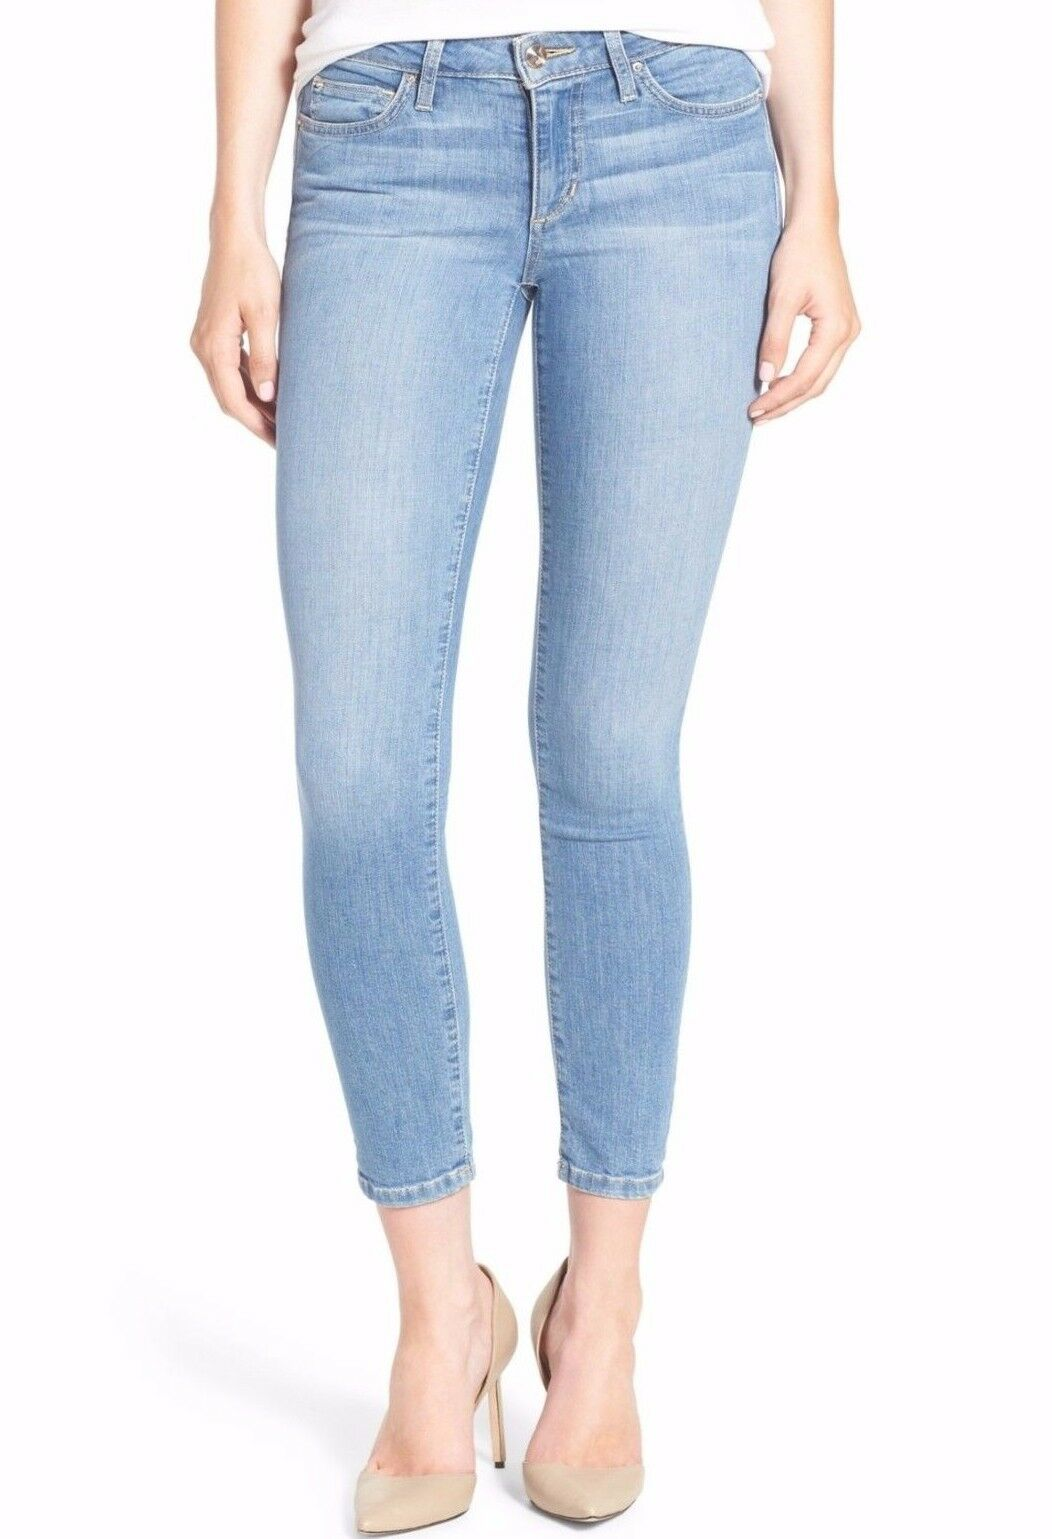 189 NWT JOE'S Sz29 THE VIXEN FLAWLESS SKINNY ANKLE MIDRISE STRETCH JEANS MITZI